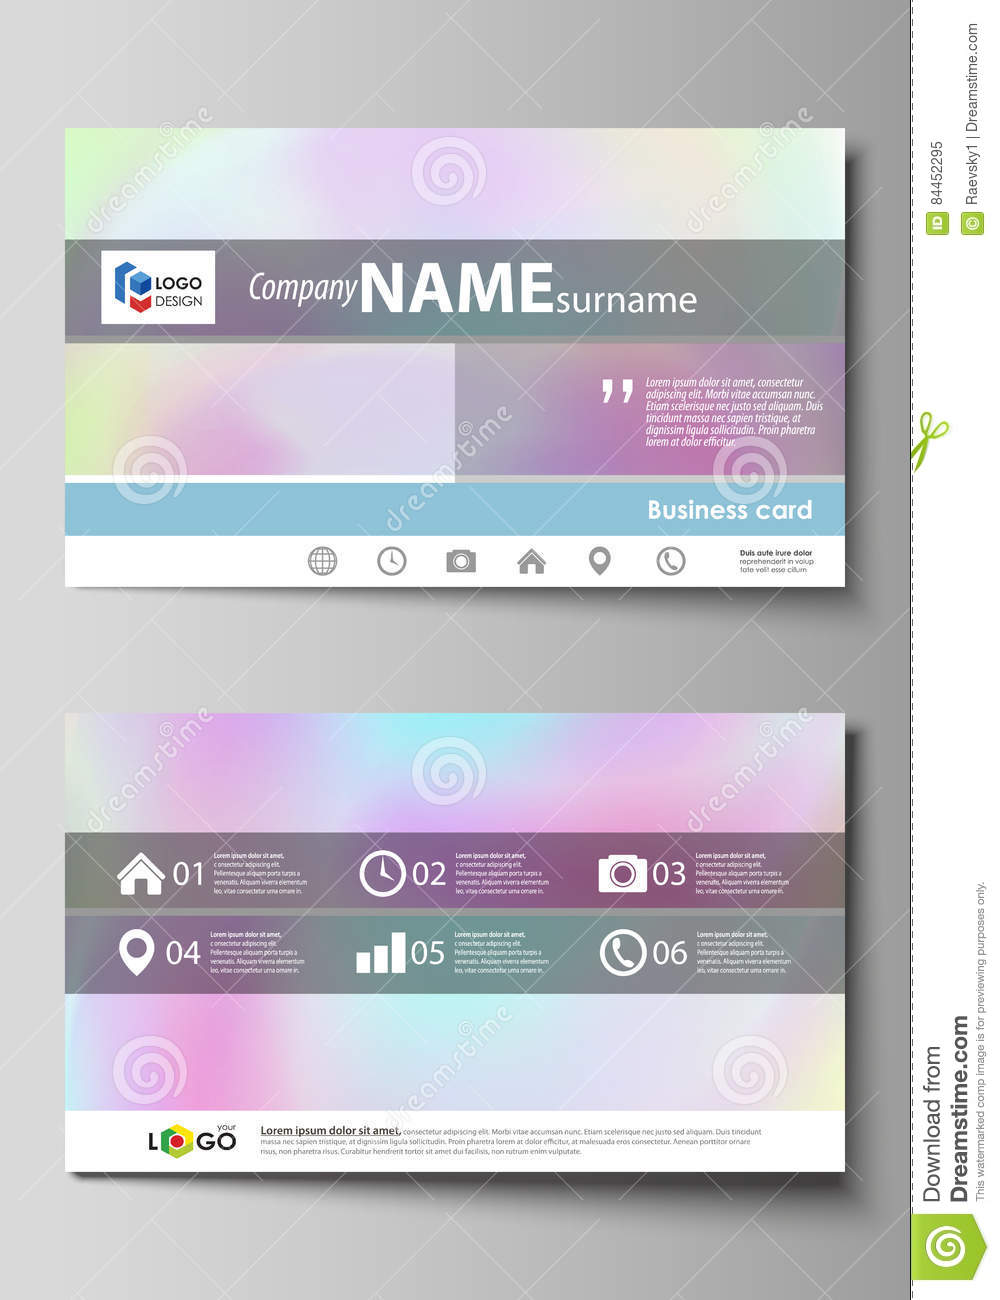 Business card templates easy editable layout abstract vector business card templates easy editable layout abstract vector design template hologram background in pastel colors magicingreecefo Image collections